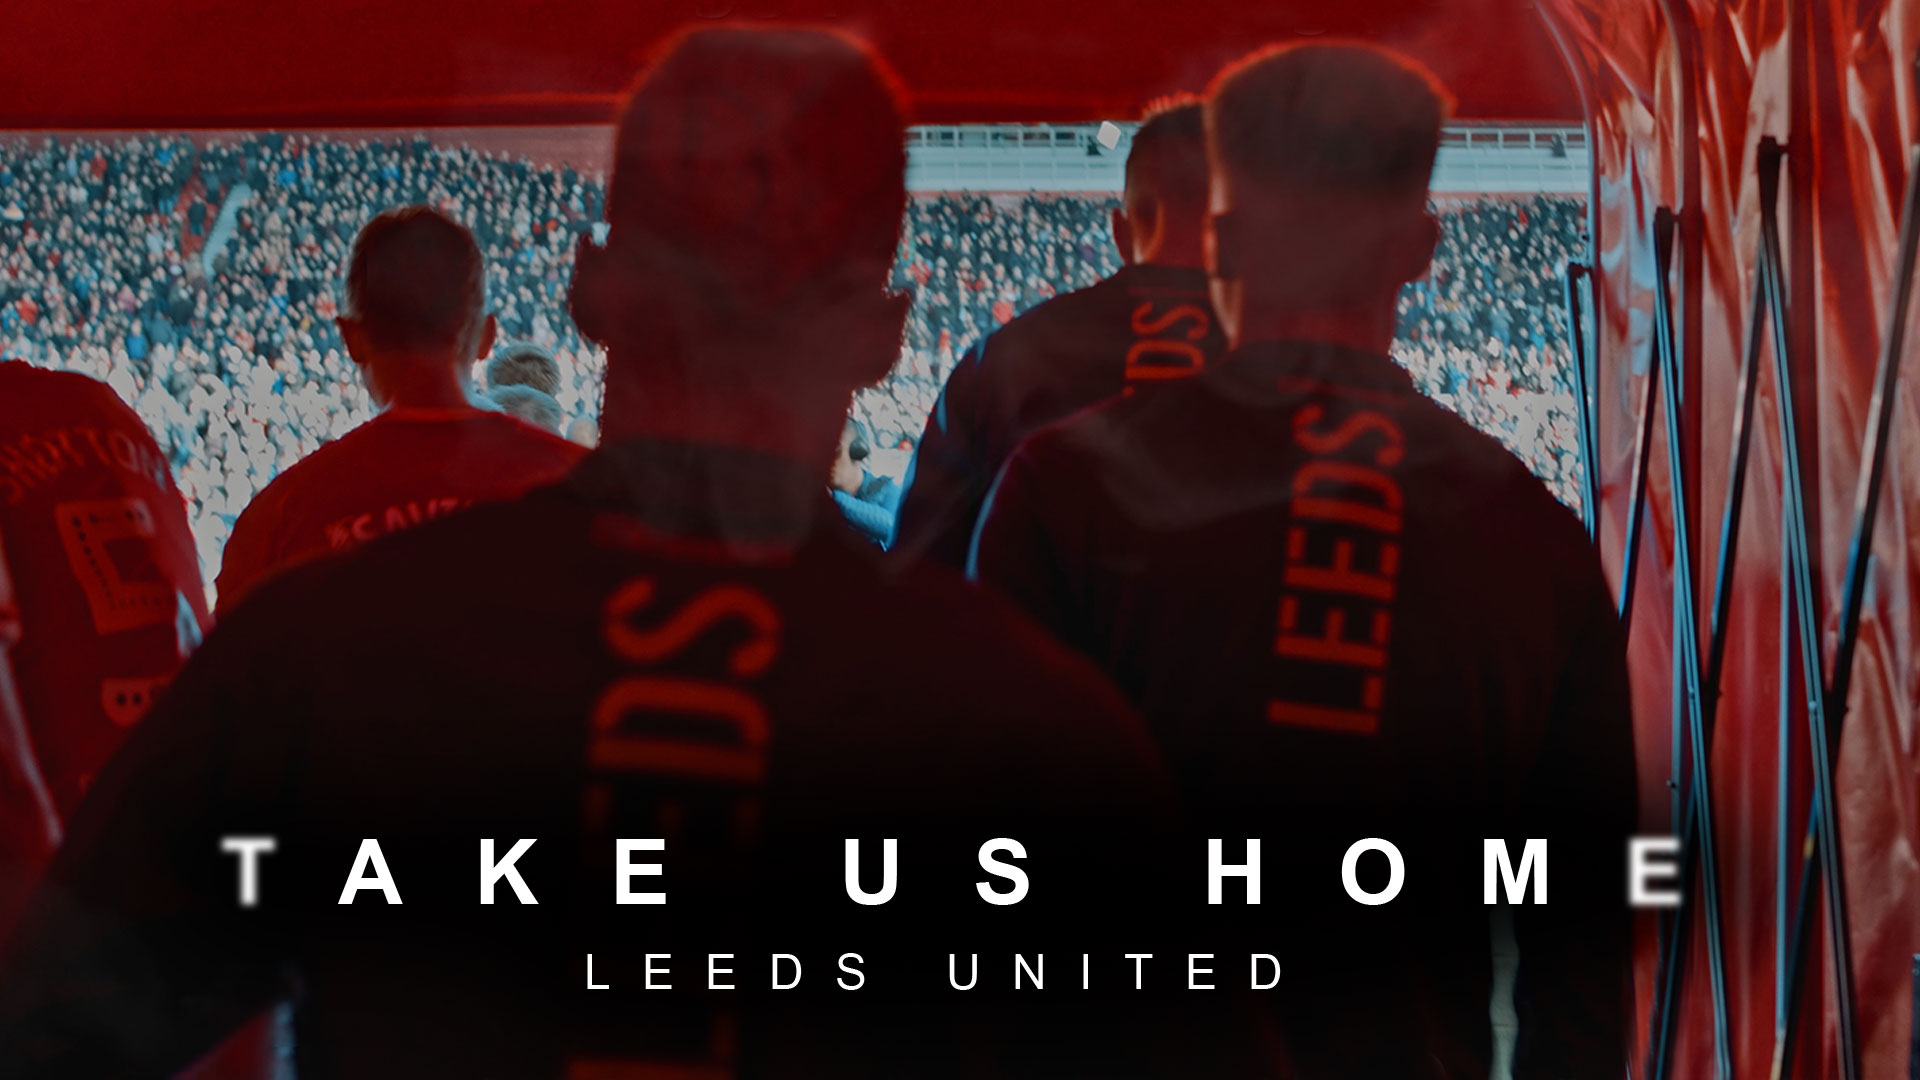 Take Us Home: Leeds United - Season 1 (4K UHD)